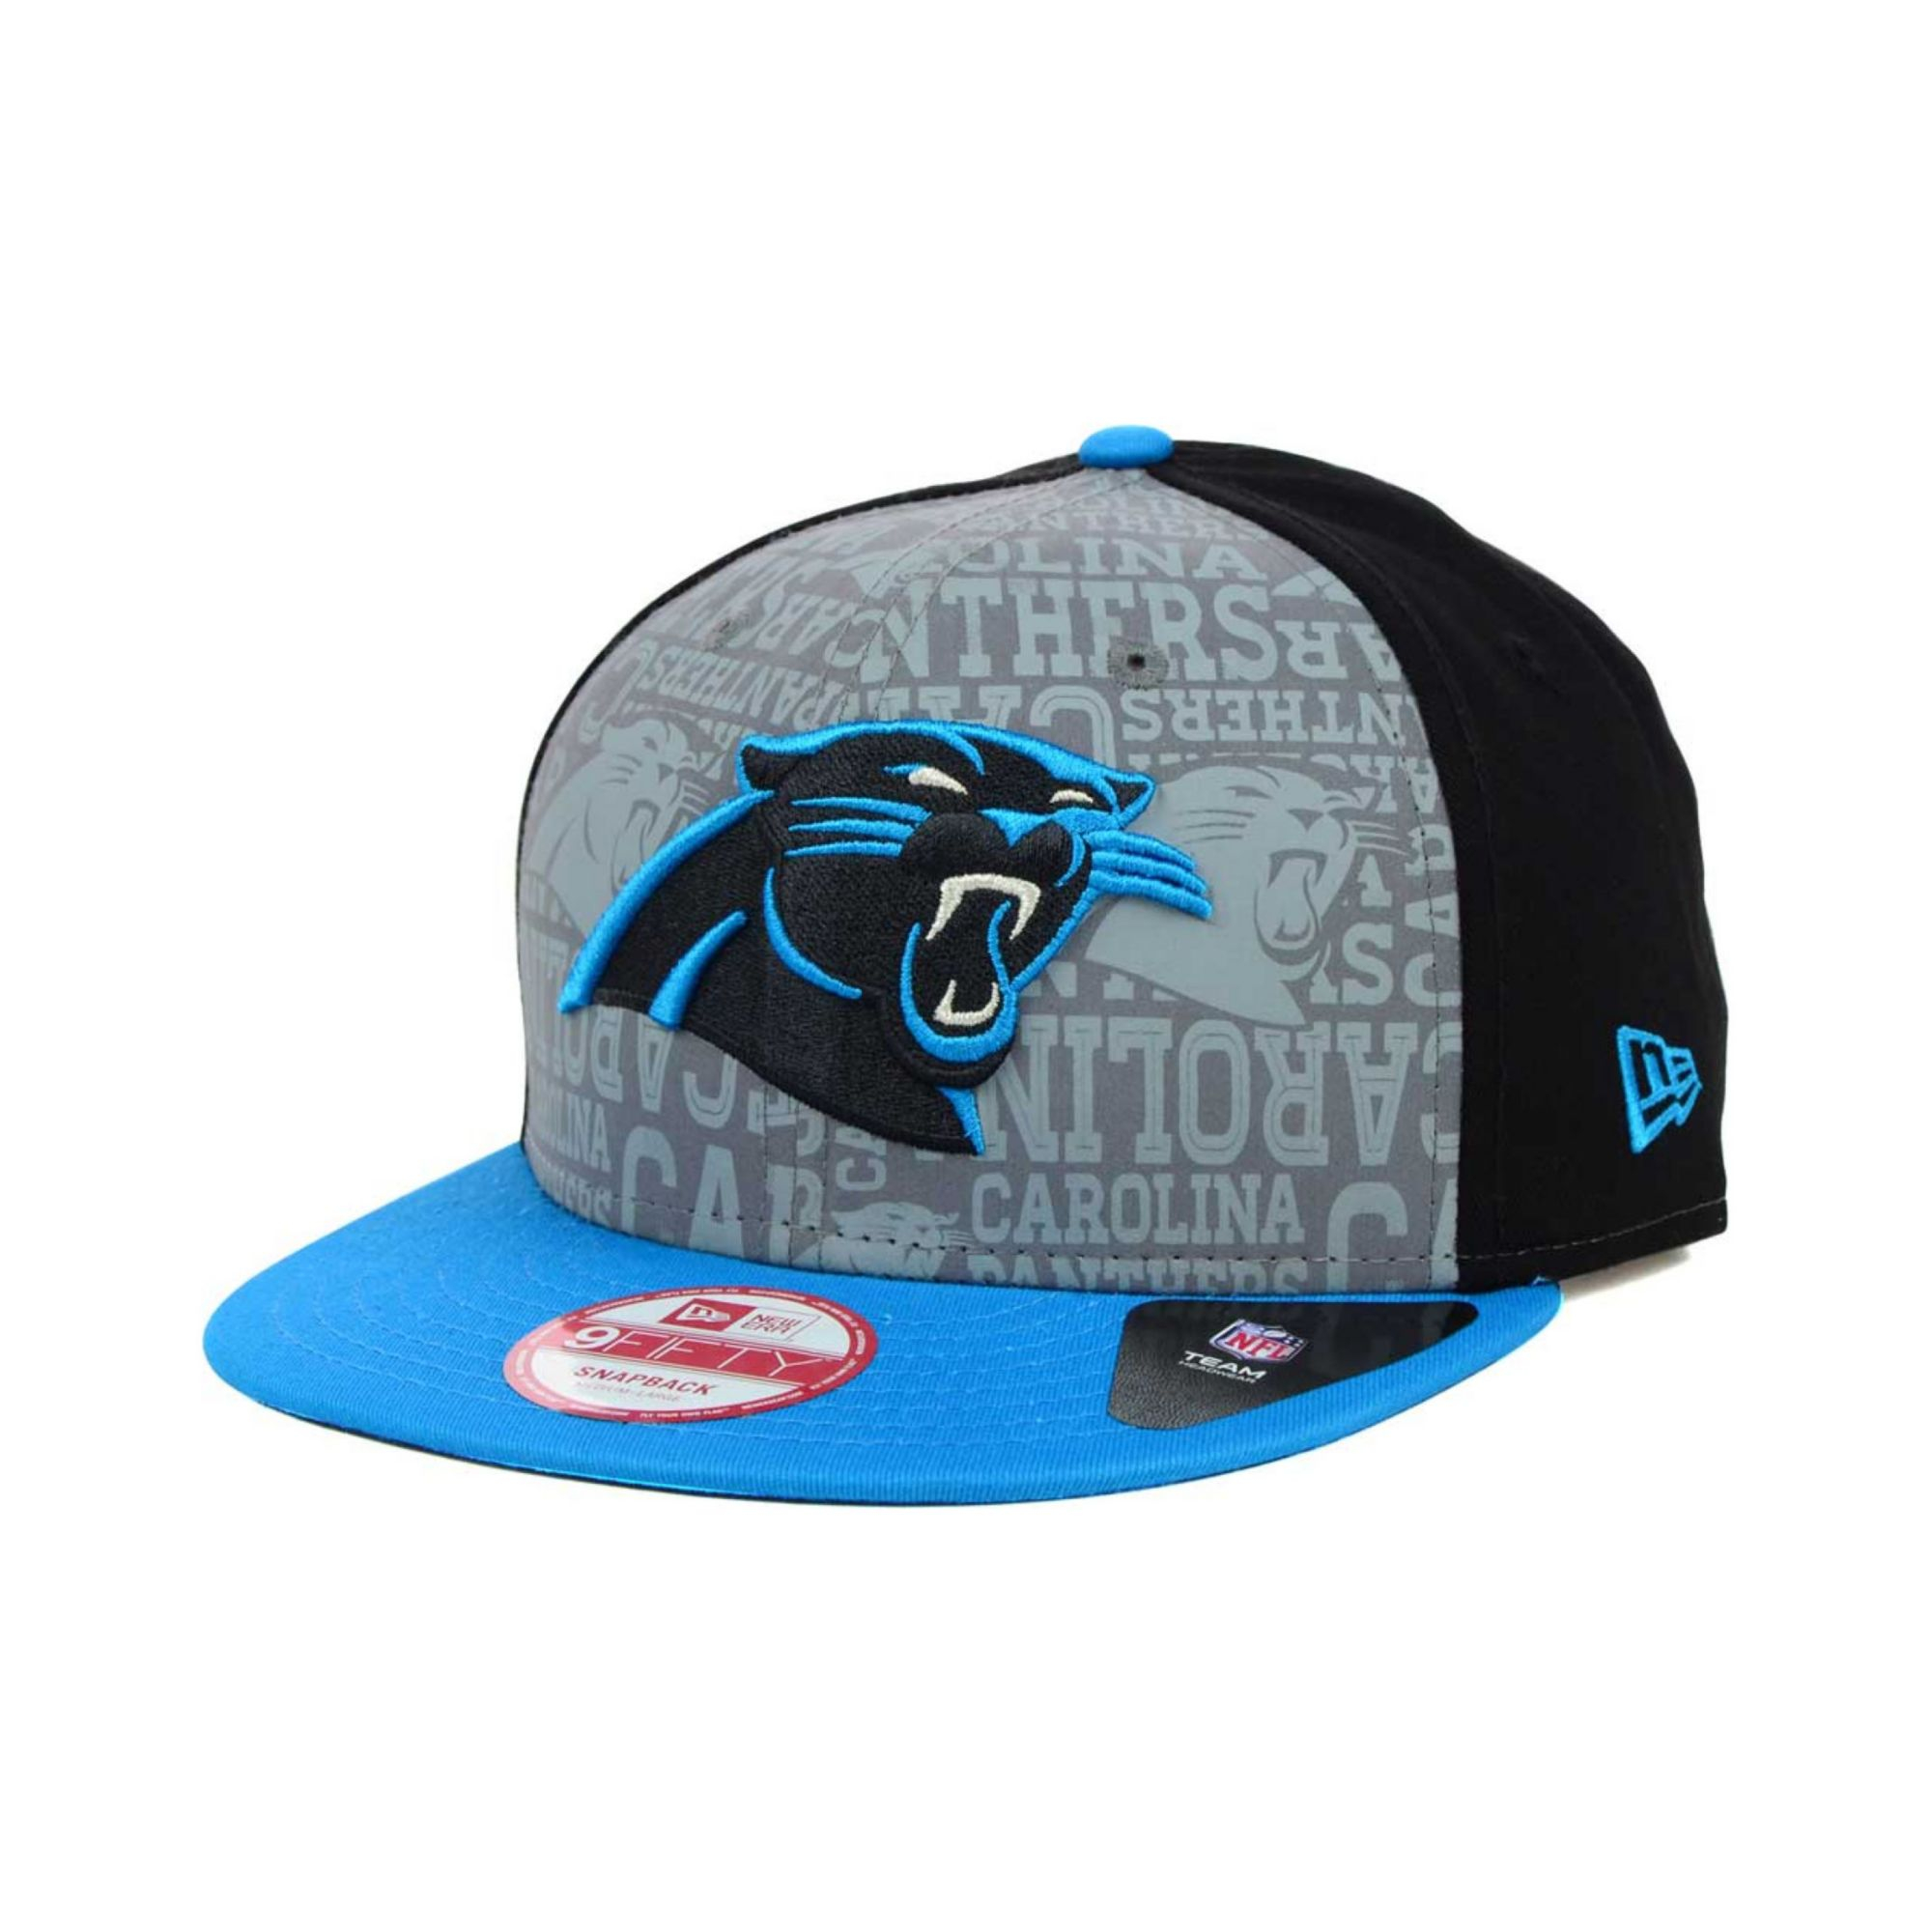 huge discount ae3b7 718a3 KTZ Carolina Panthers Nfl Draft 9fifty Snapback Cap in Blue for Men ...